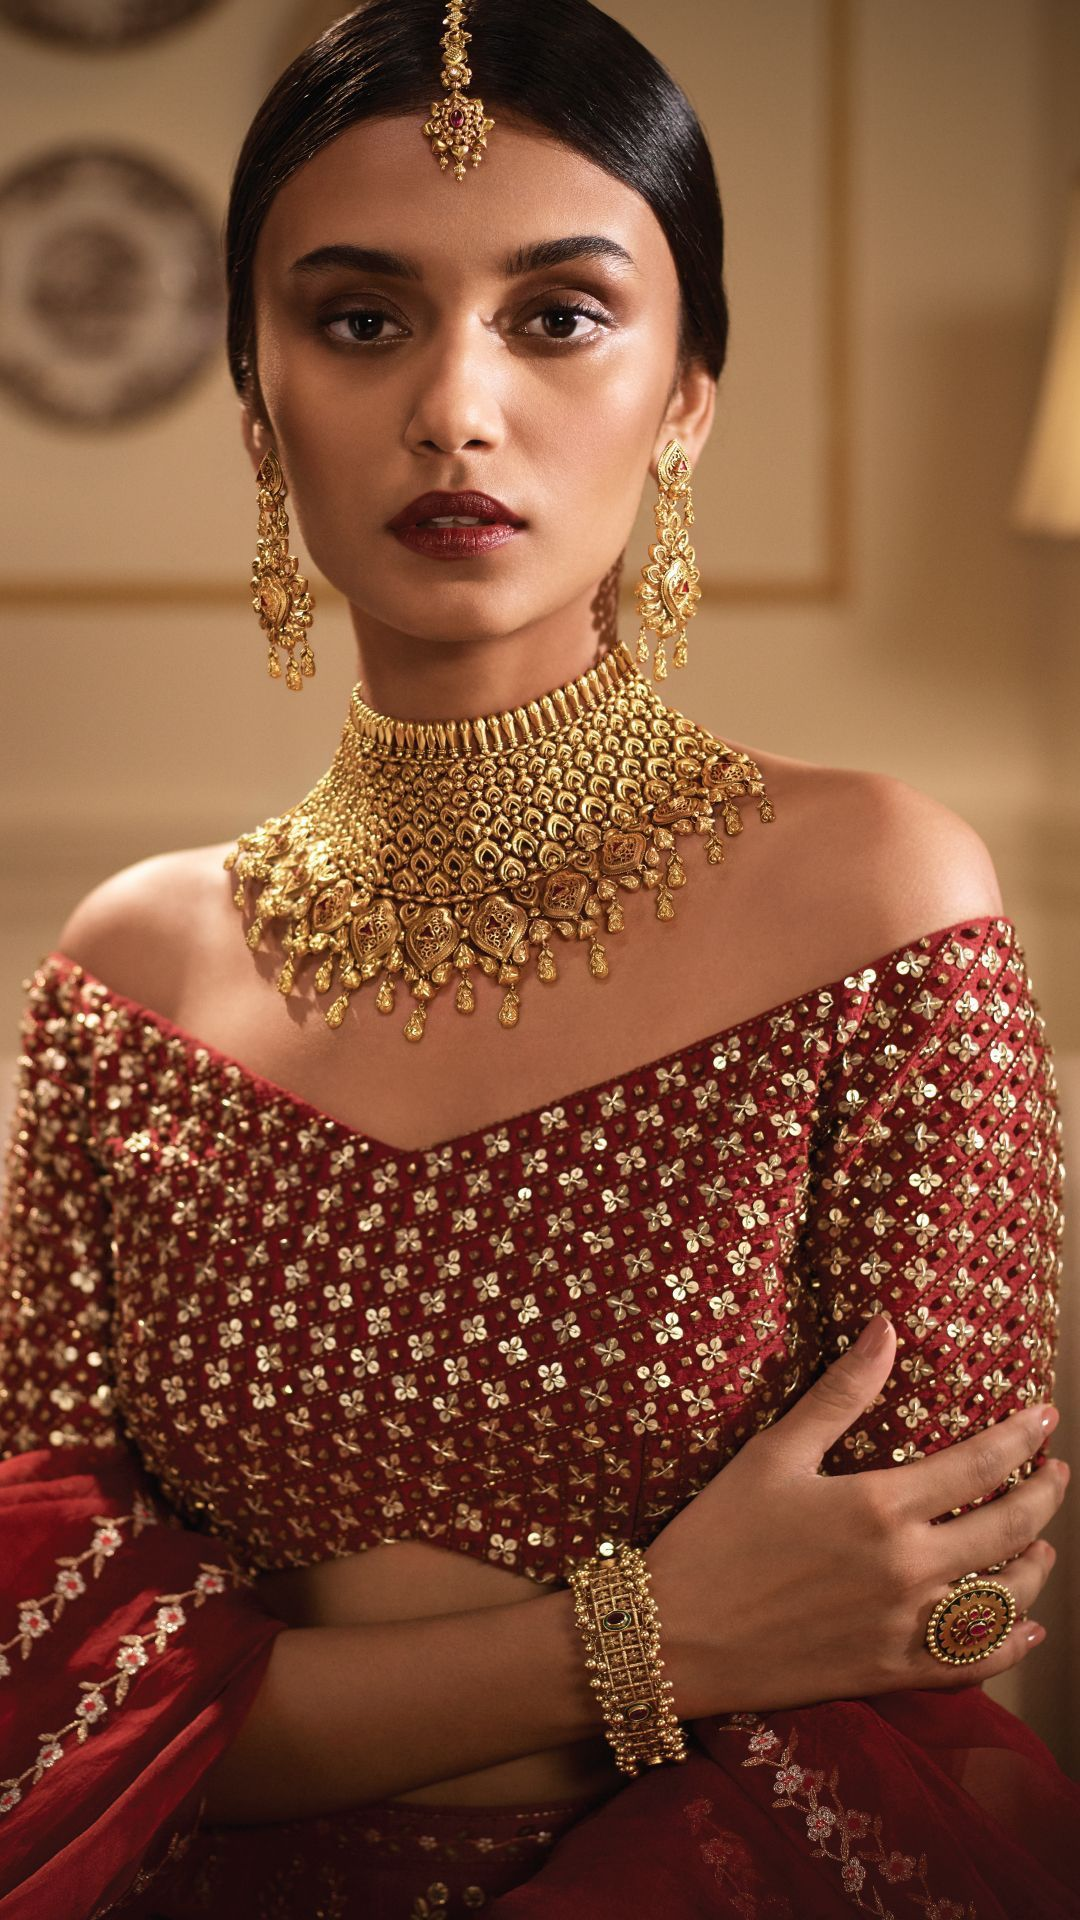 Modern gold jewellery in contemporary bridal style